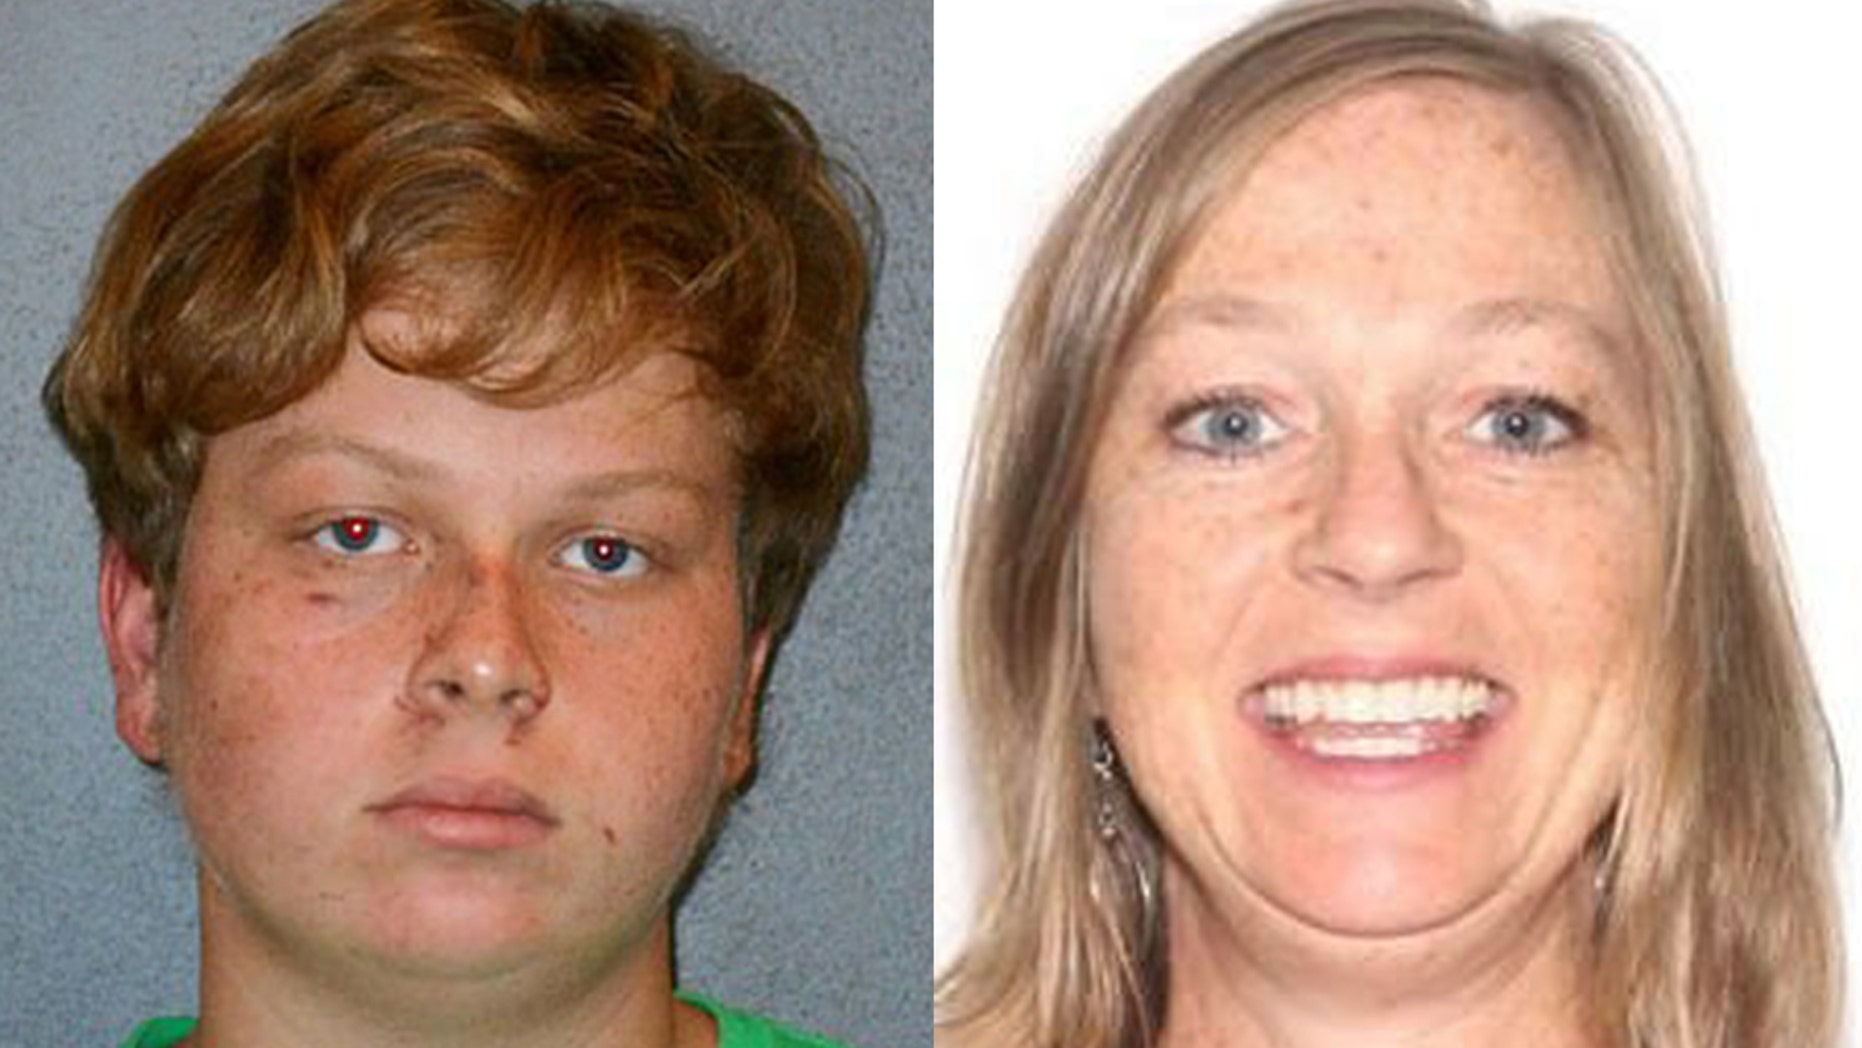 Teen 'kills mum after arguing over bad school grade'